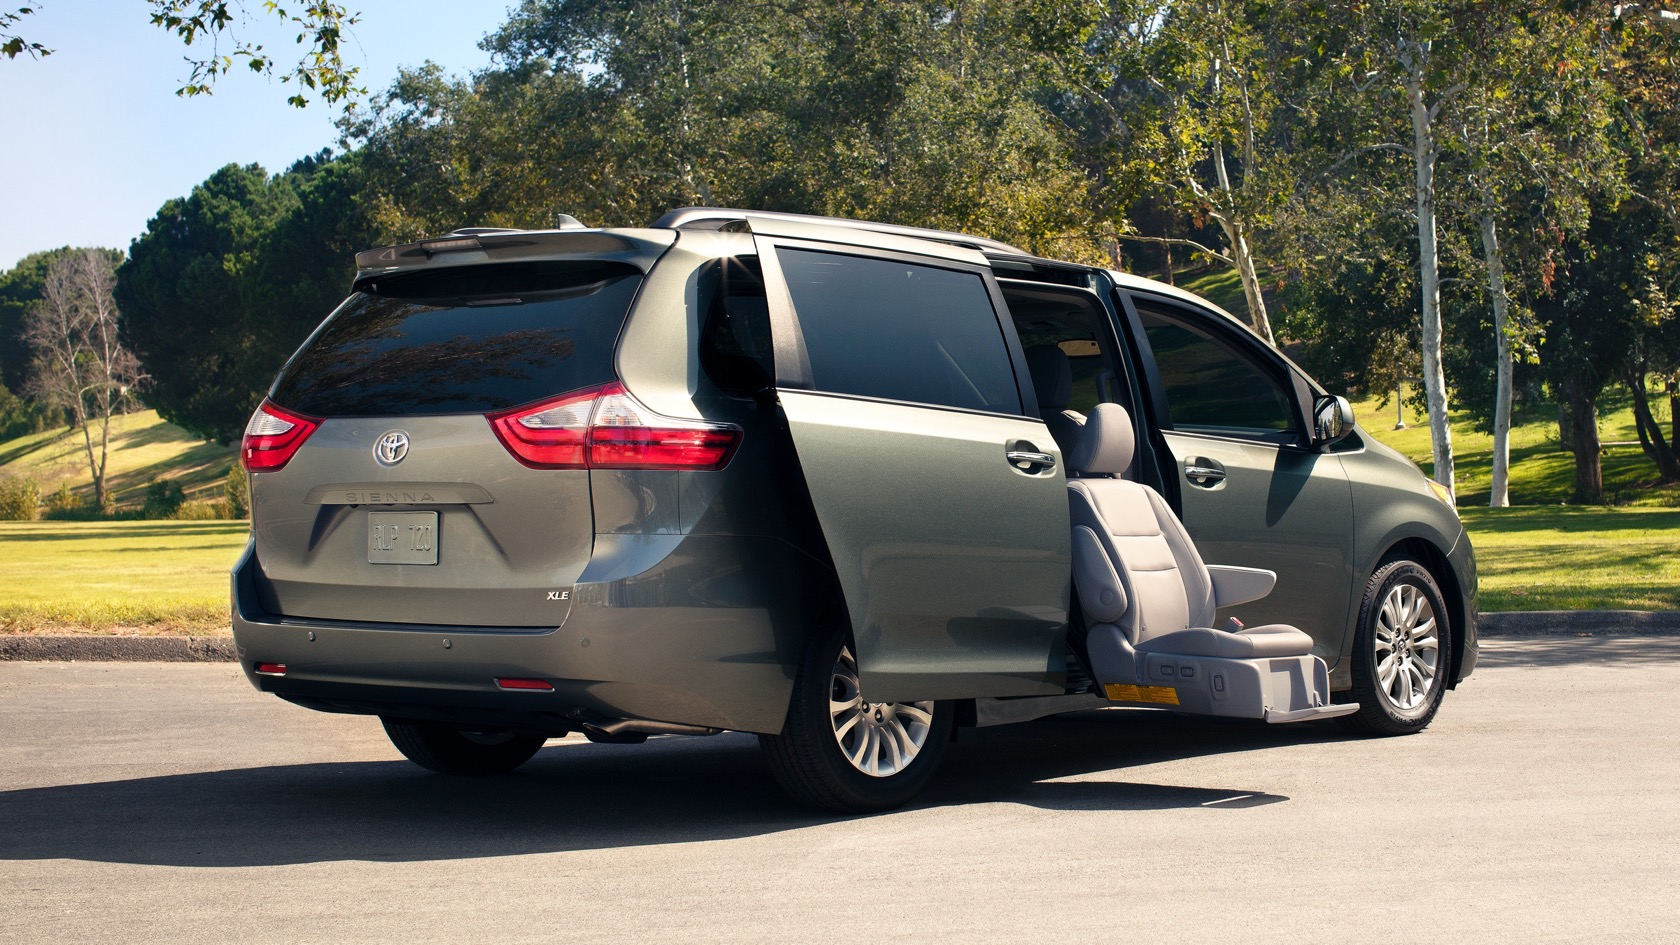 All Trim Models Of The Toyota Sienna Also Come Standard With Safety Sense Which Includes Automatic Emergency Braking Forward Collision Warning